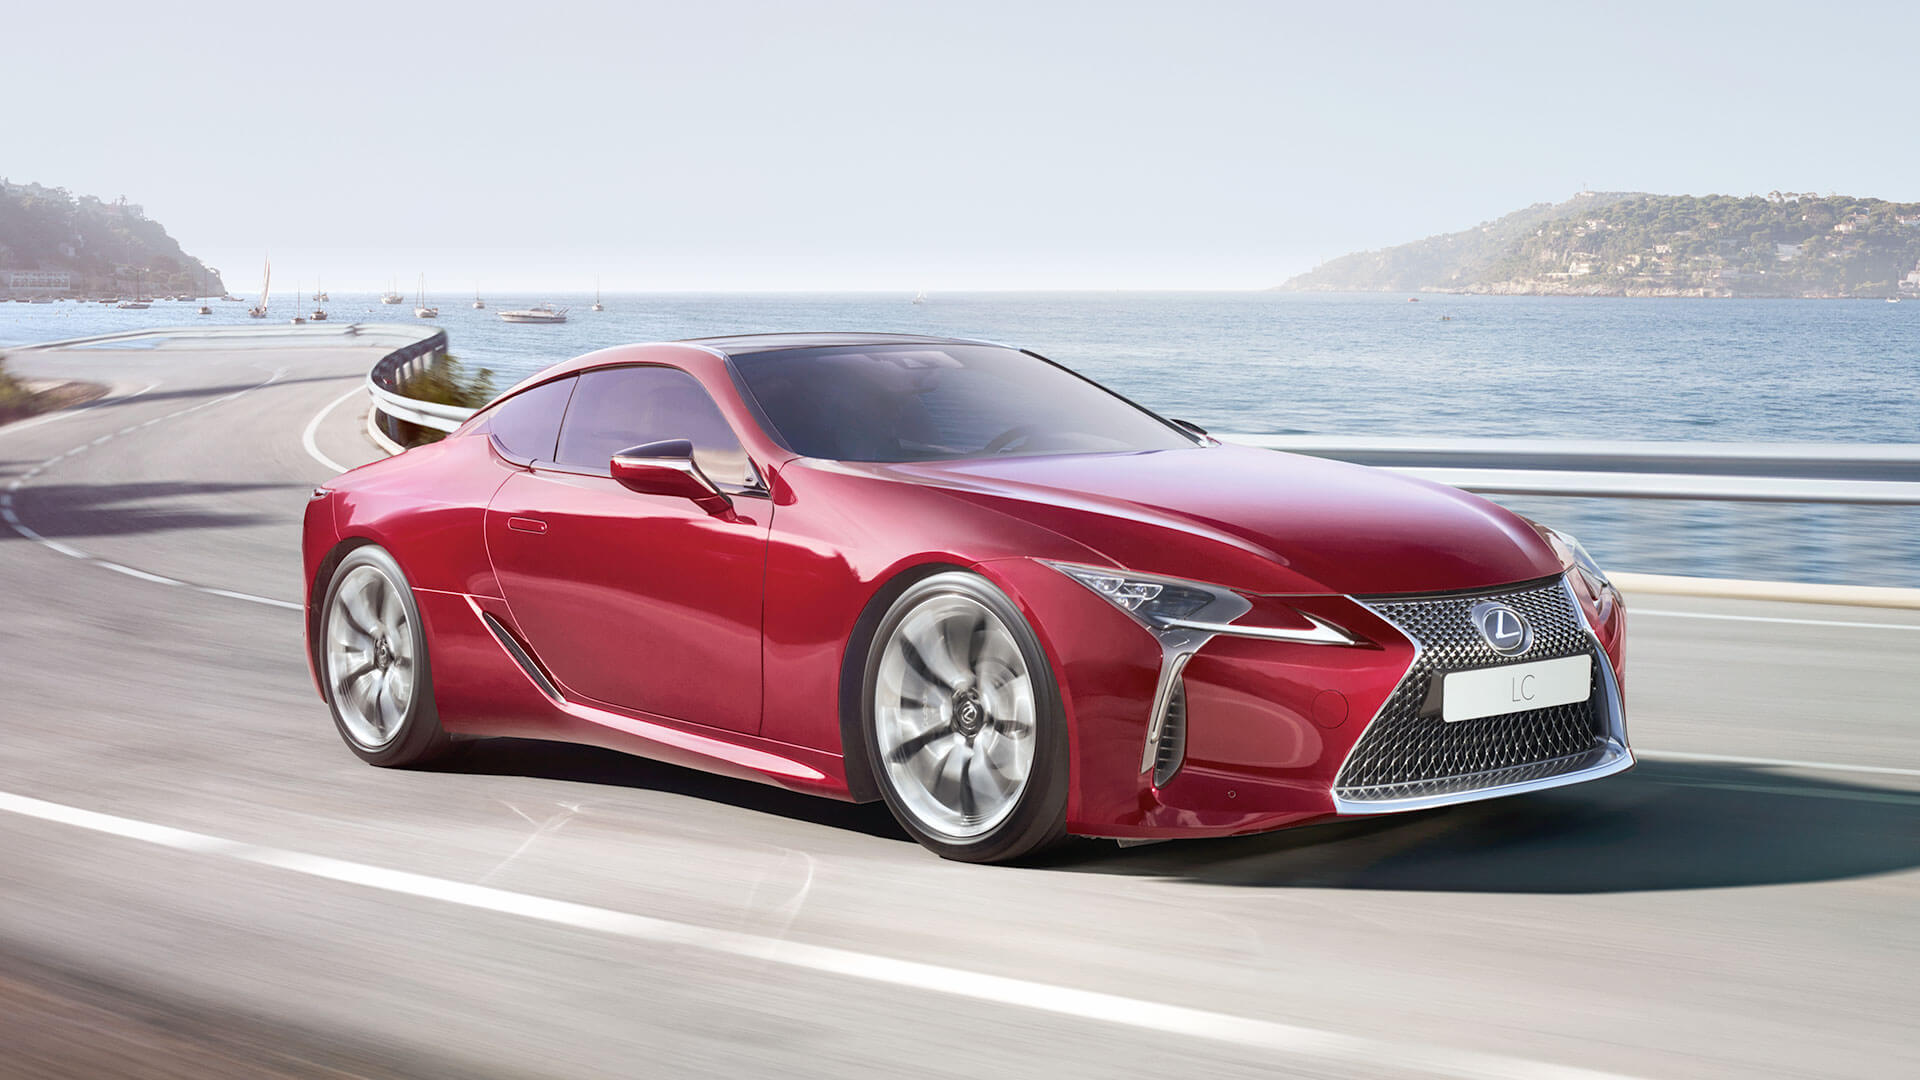 2017 lexus lc features four wheel active steering